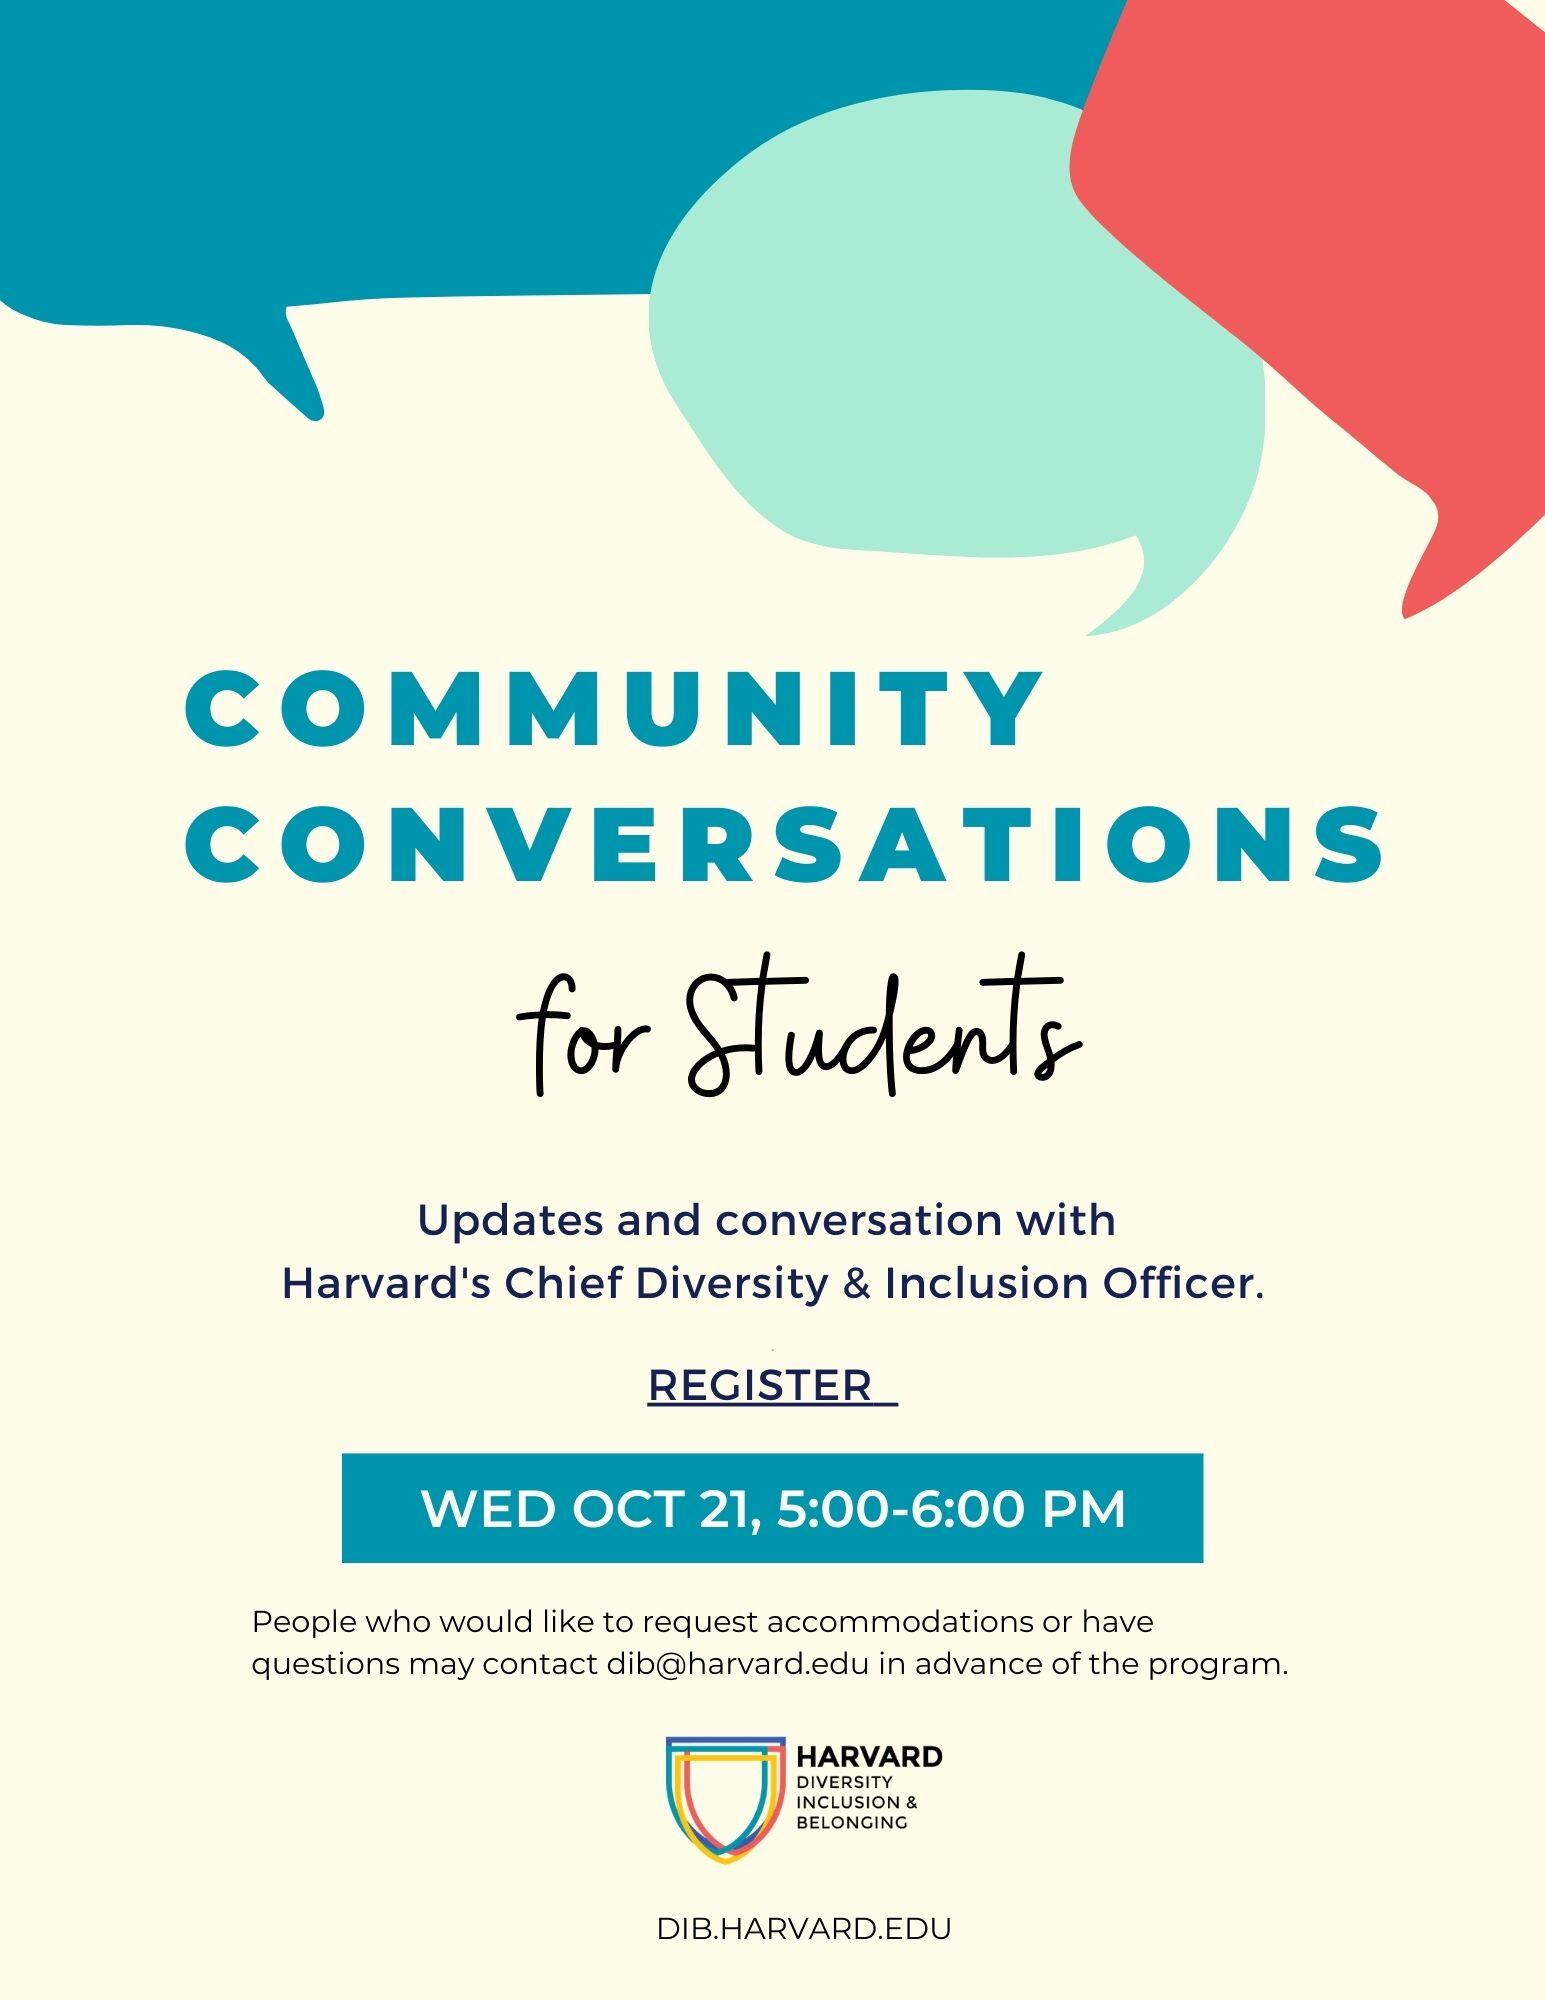 Community Conversation Students Flyer Image